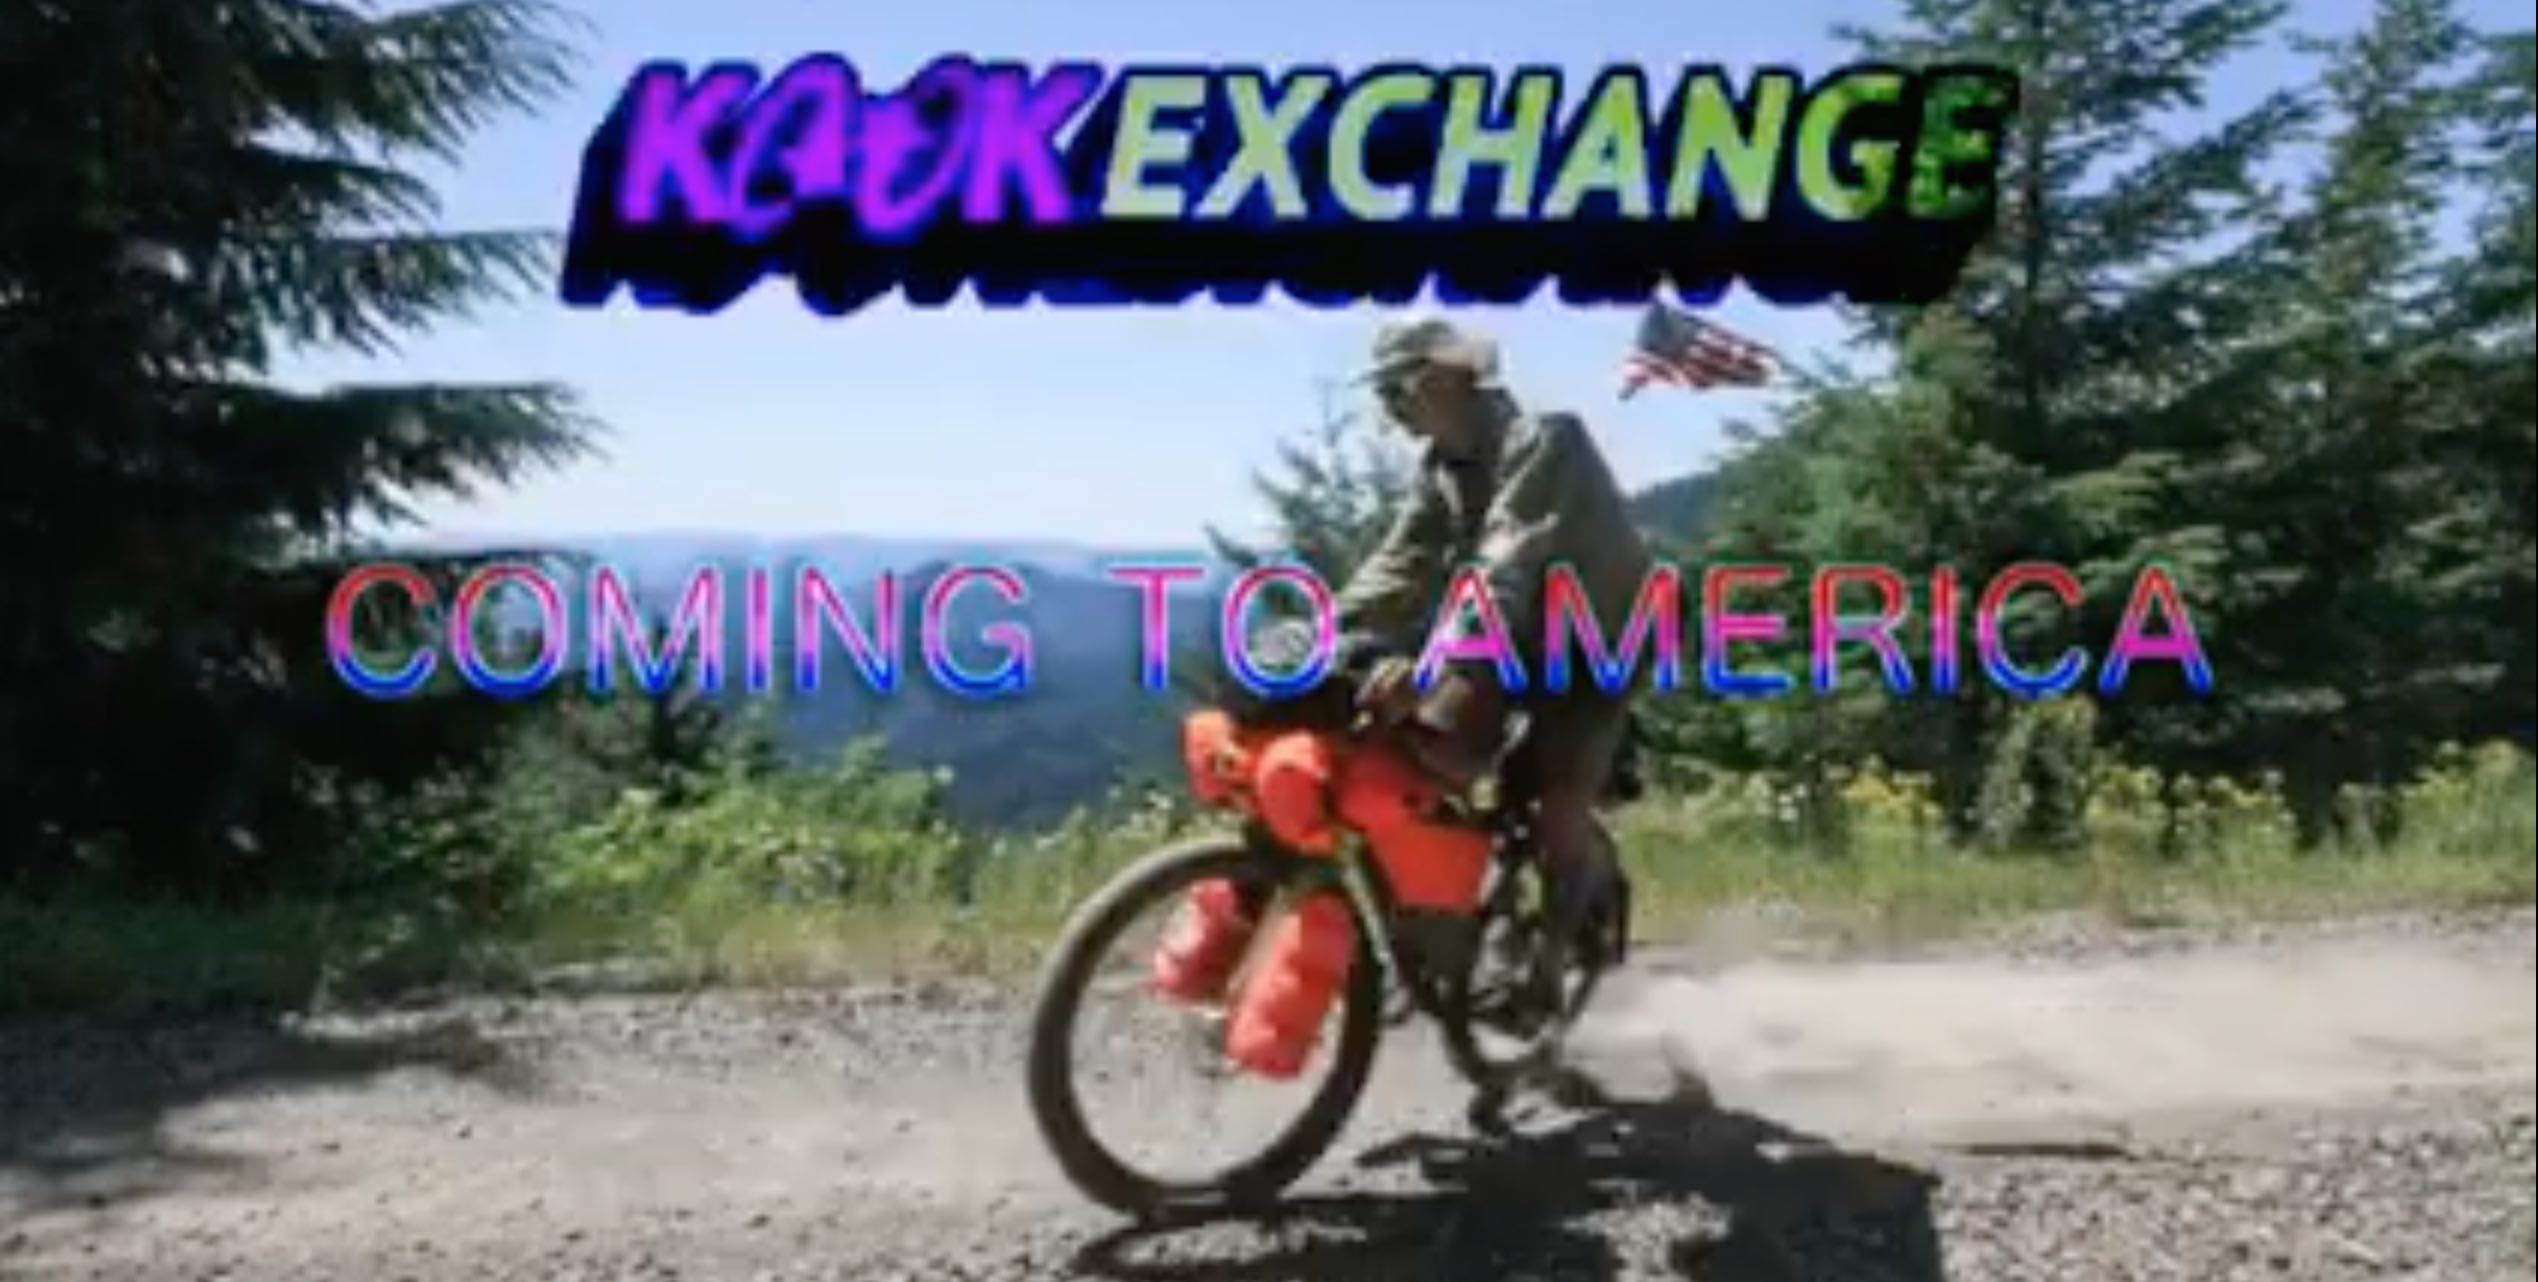 Kook Exchange American tour 2019